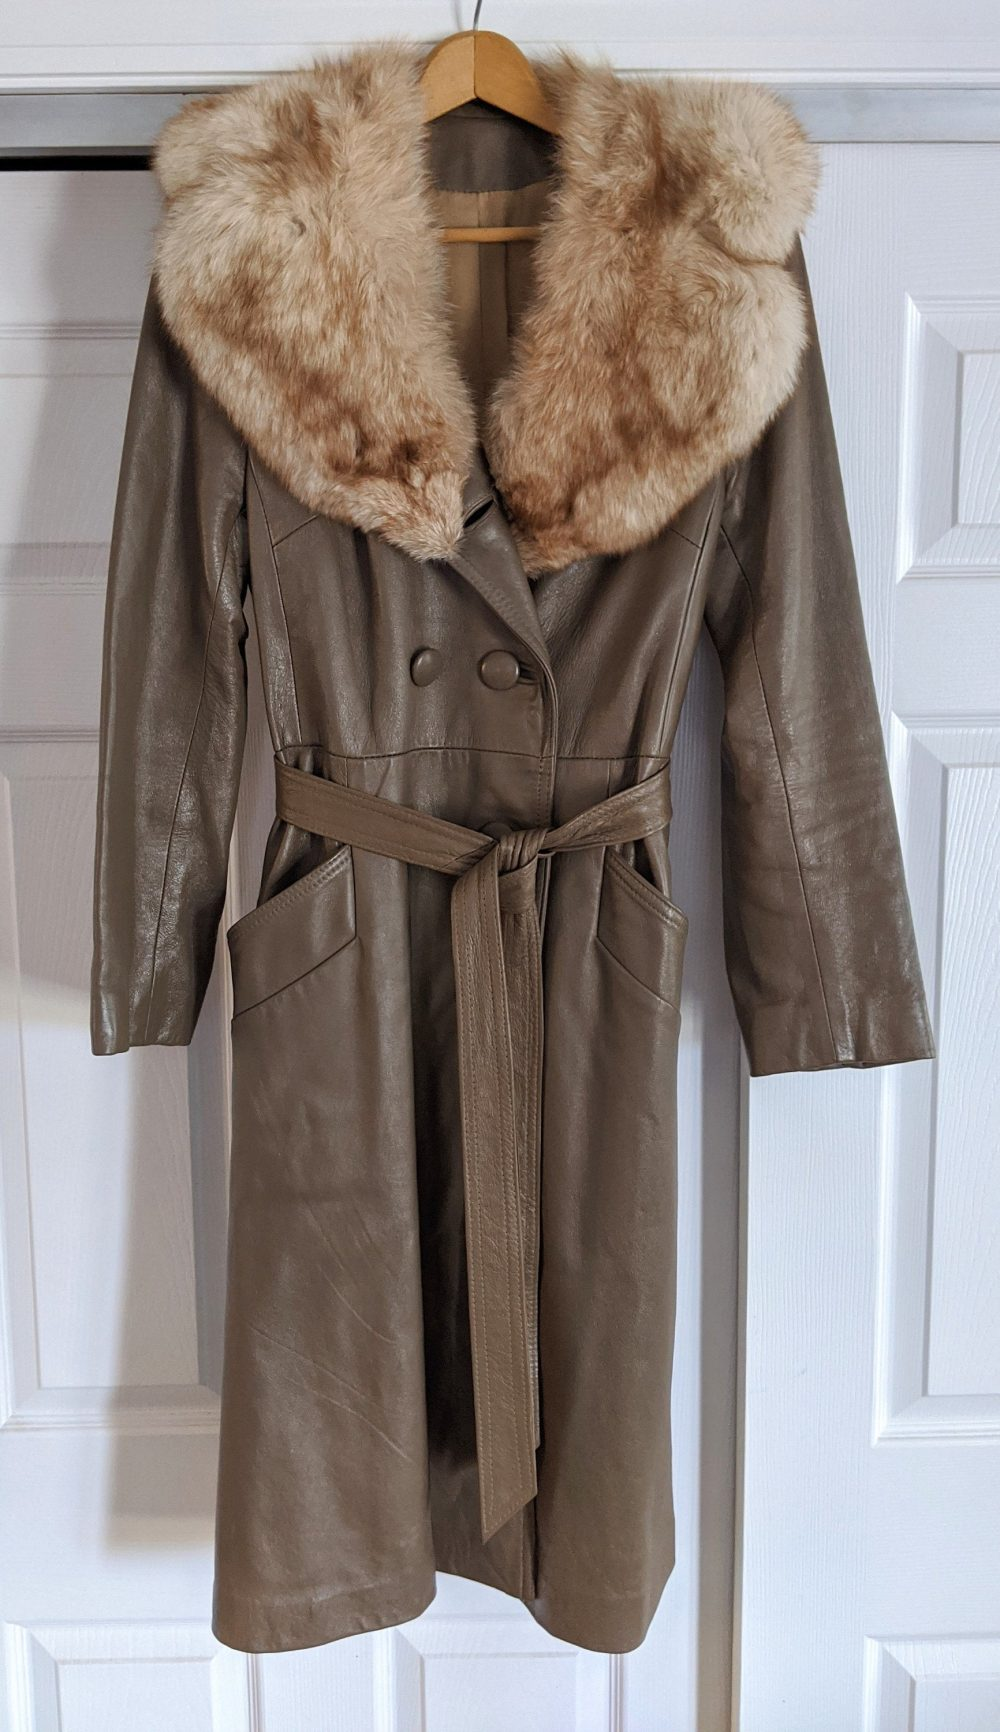 Women's Brown Leather Double Breasted Trench Coat With Real Fur Collar, Size 12